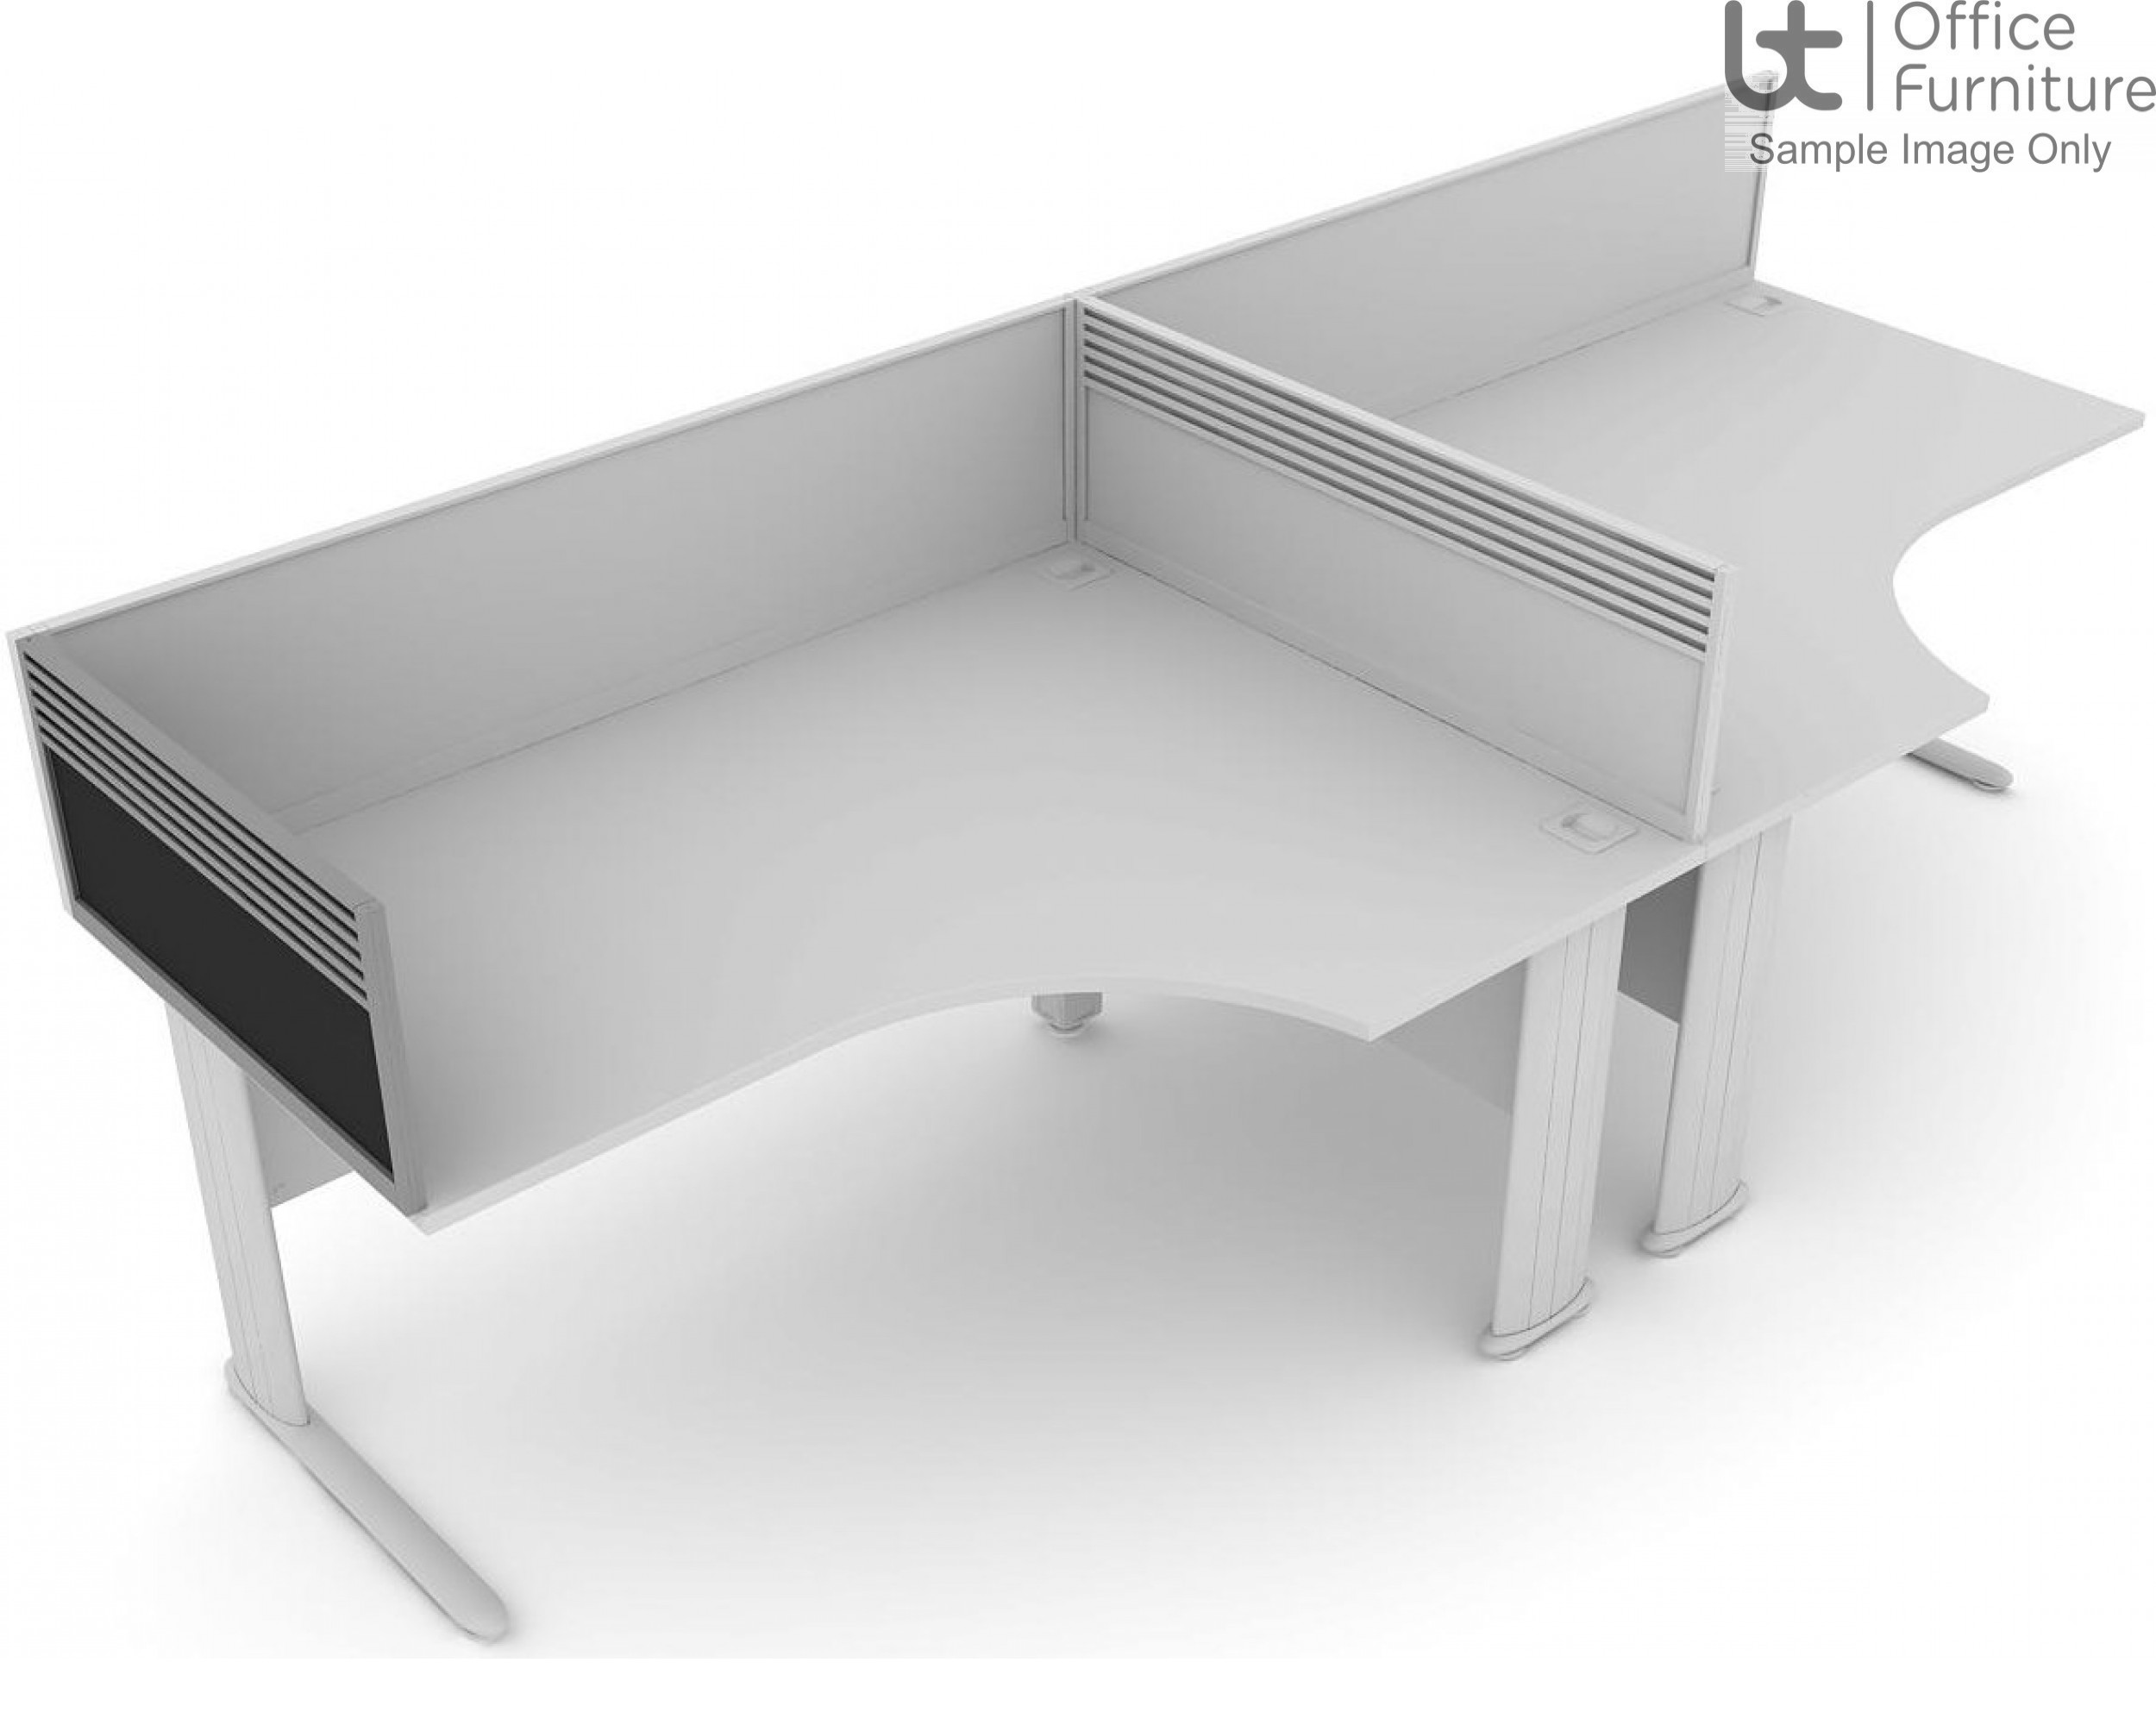 Elite System Screen End Return with Management Rail - Fabric